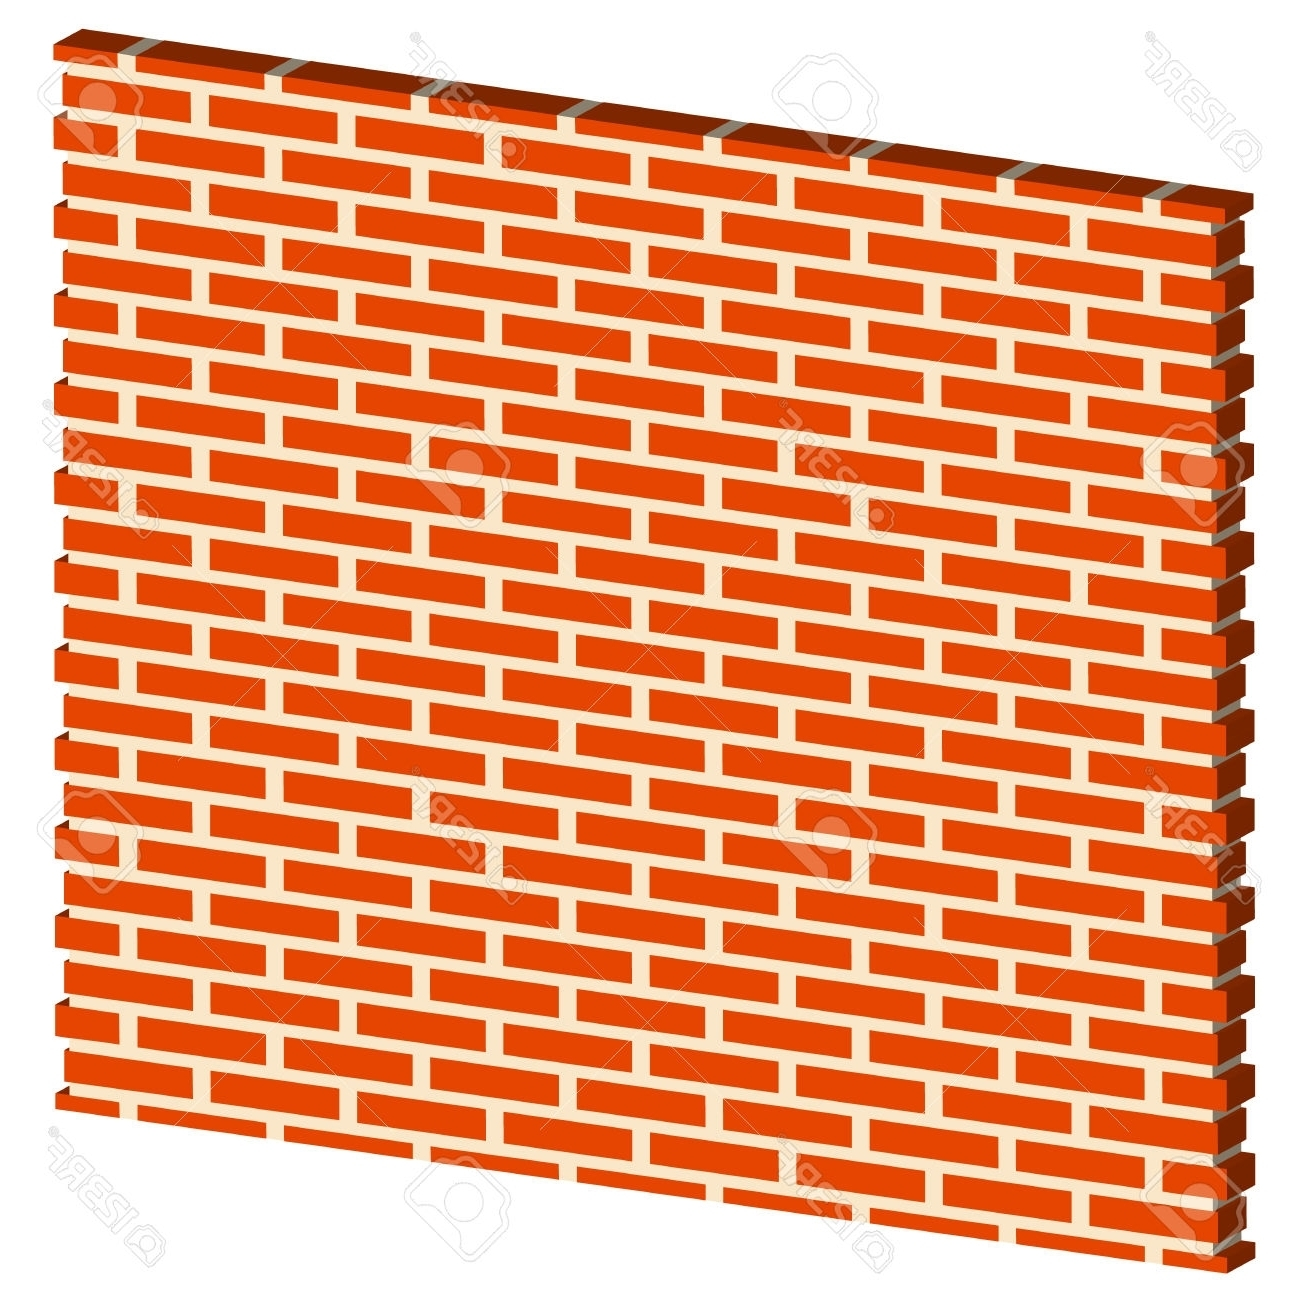 3d Brick Wall Art With Well Known 3d Clipart Brick Wall – Pencil And In Color 3d Clipart Brick Wall (View 12 of 15)